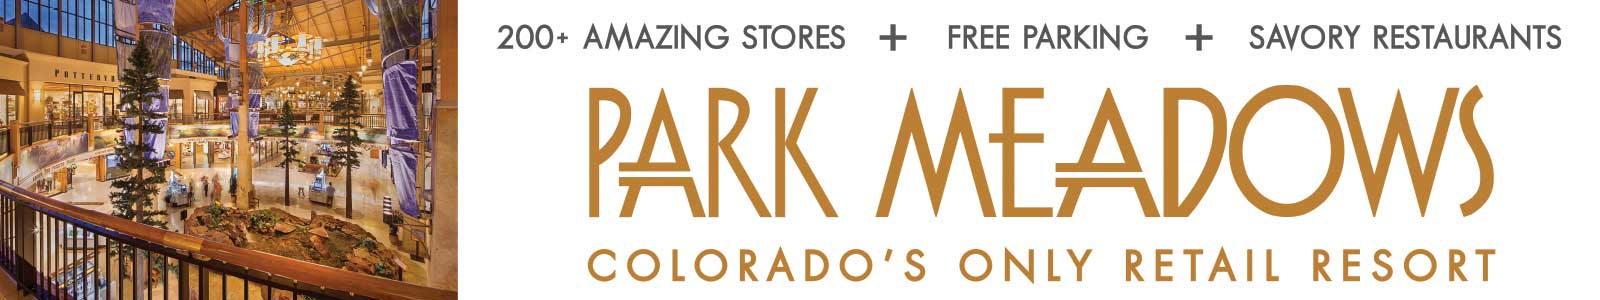 Park Meadows Banner Ad